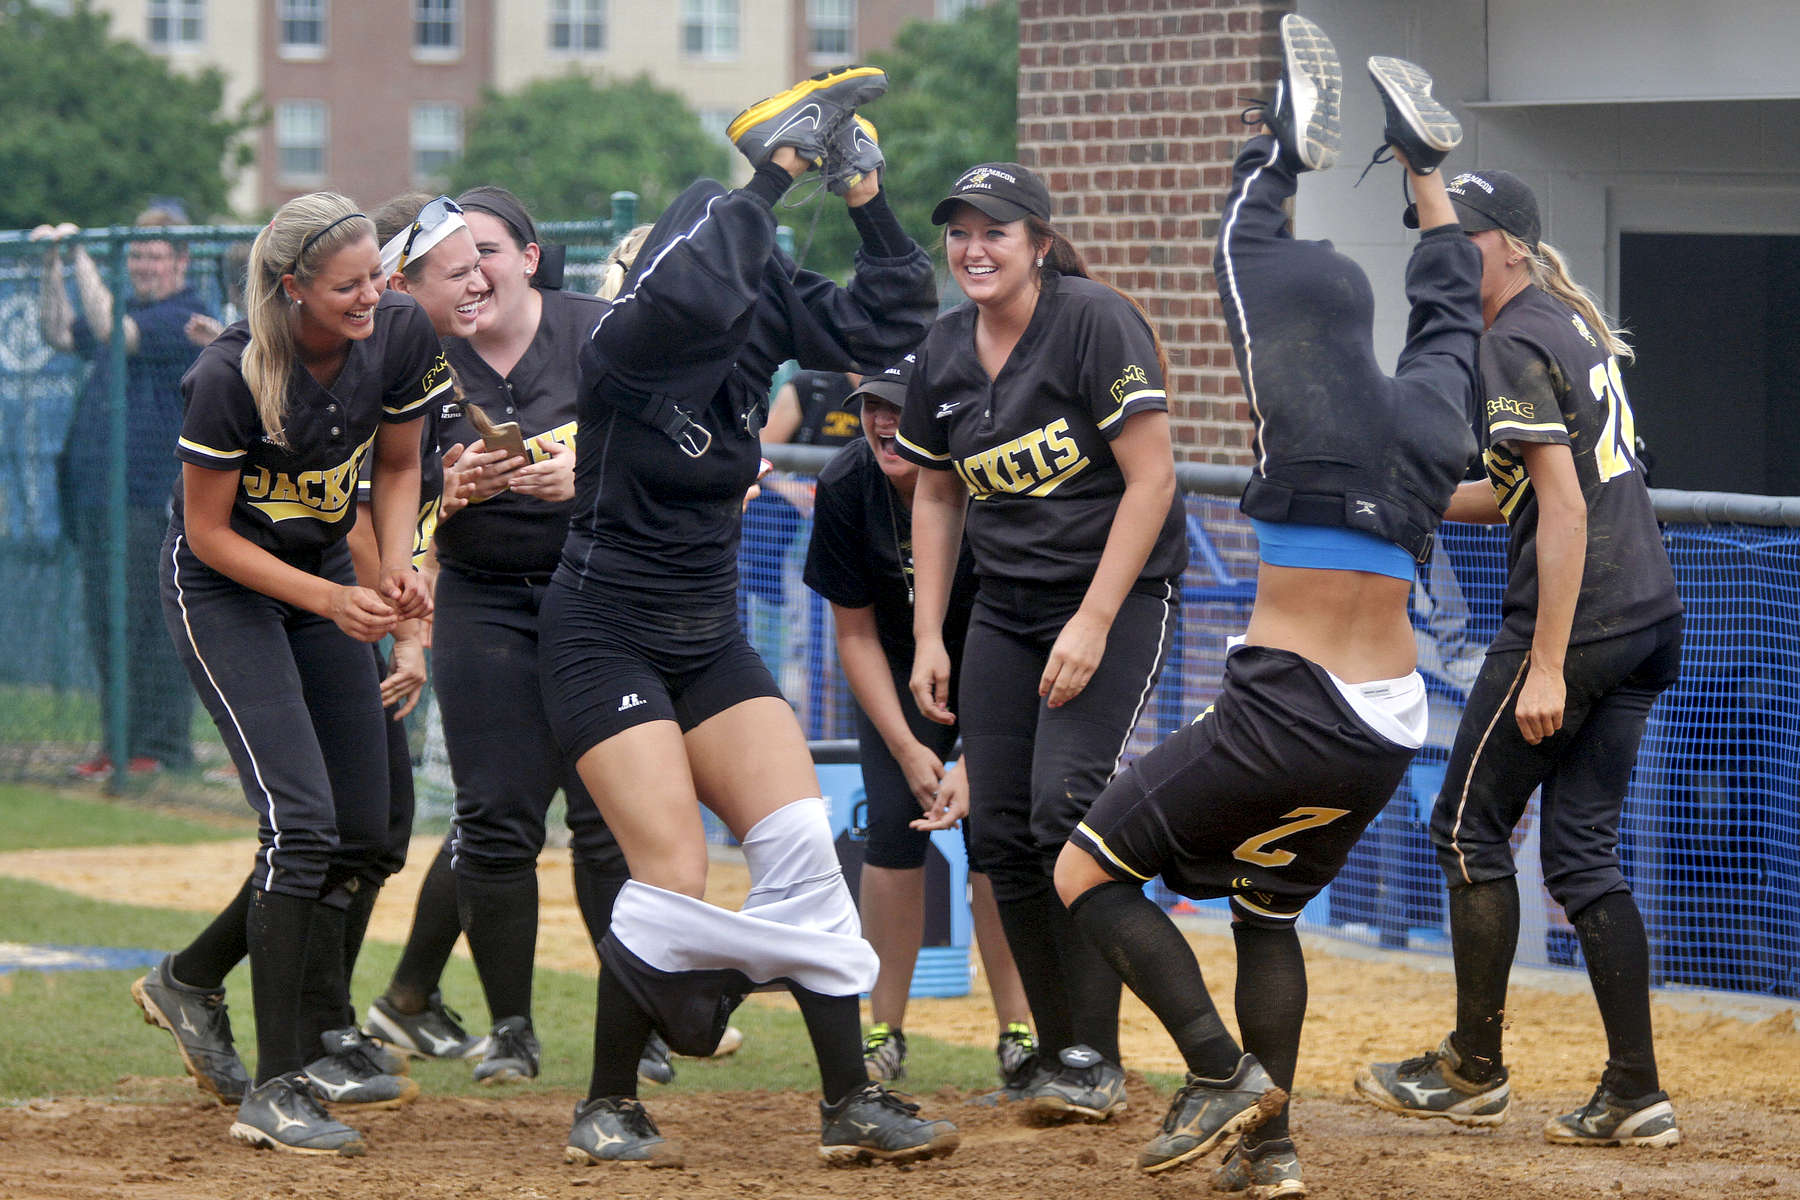 Randolph-Macon players attempt to pass the time while a rain delay during Sunday's NCAA Division III regional tournament championship against Christopher Newport University on May 10, 2015.